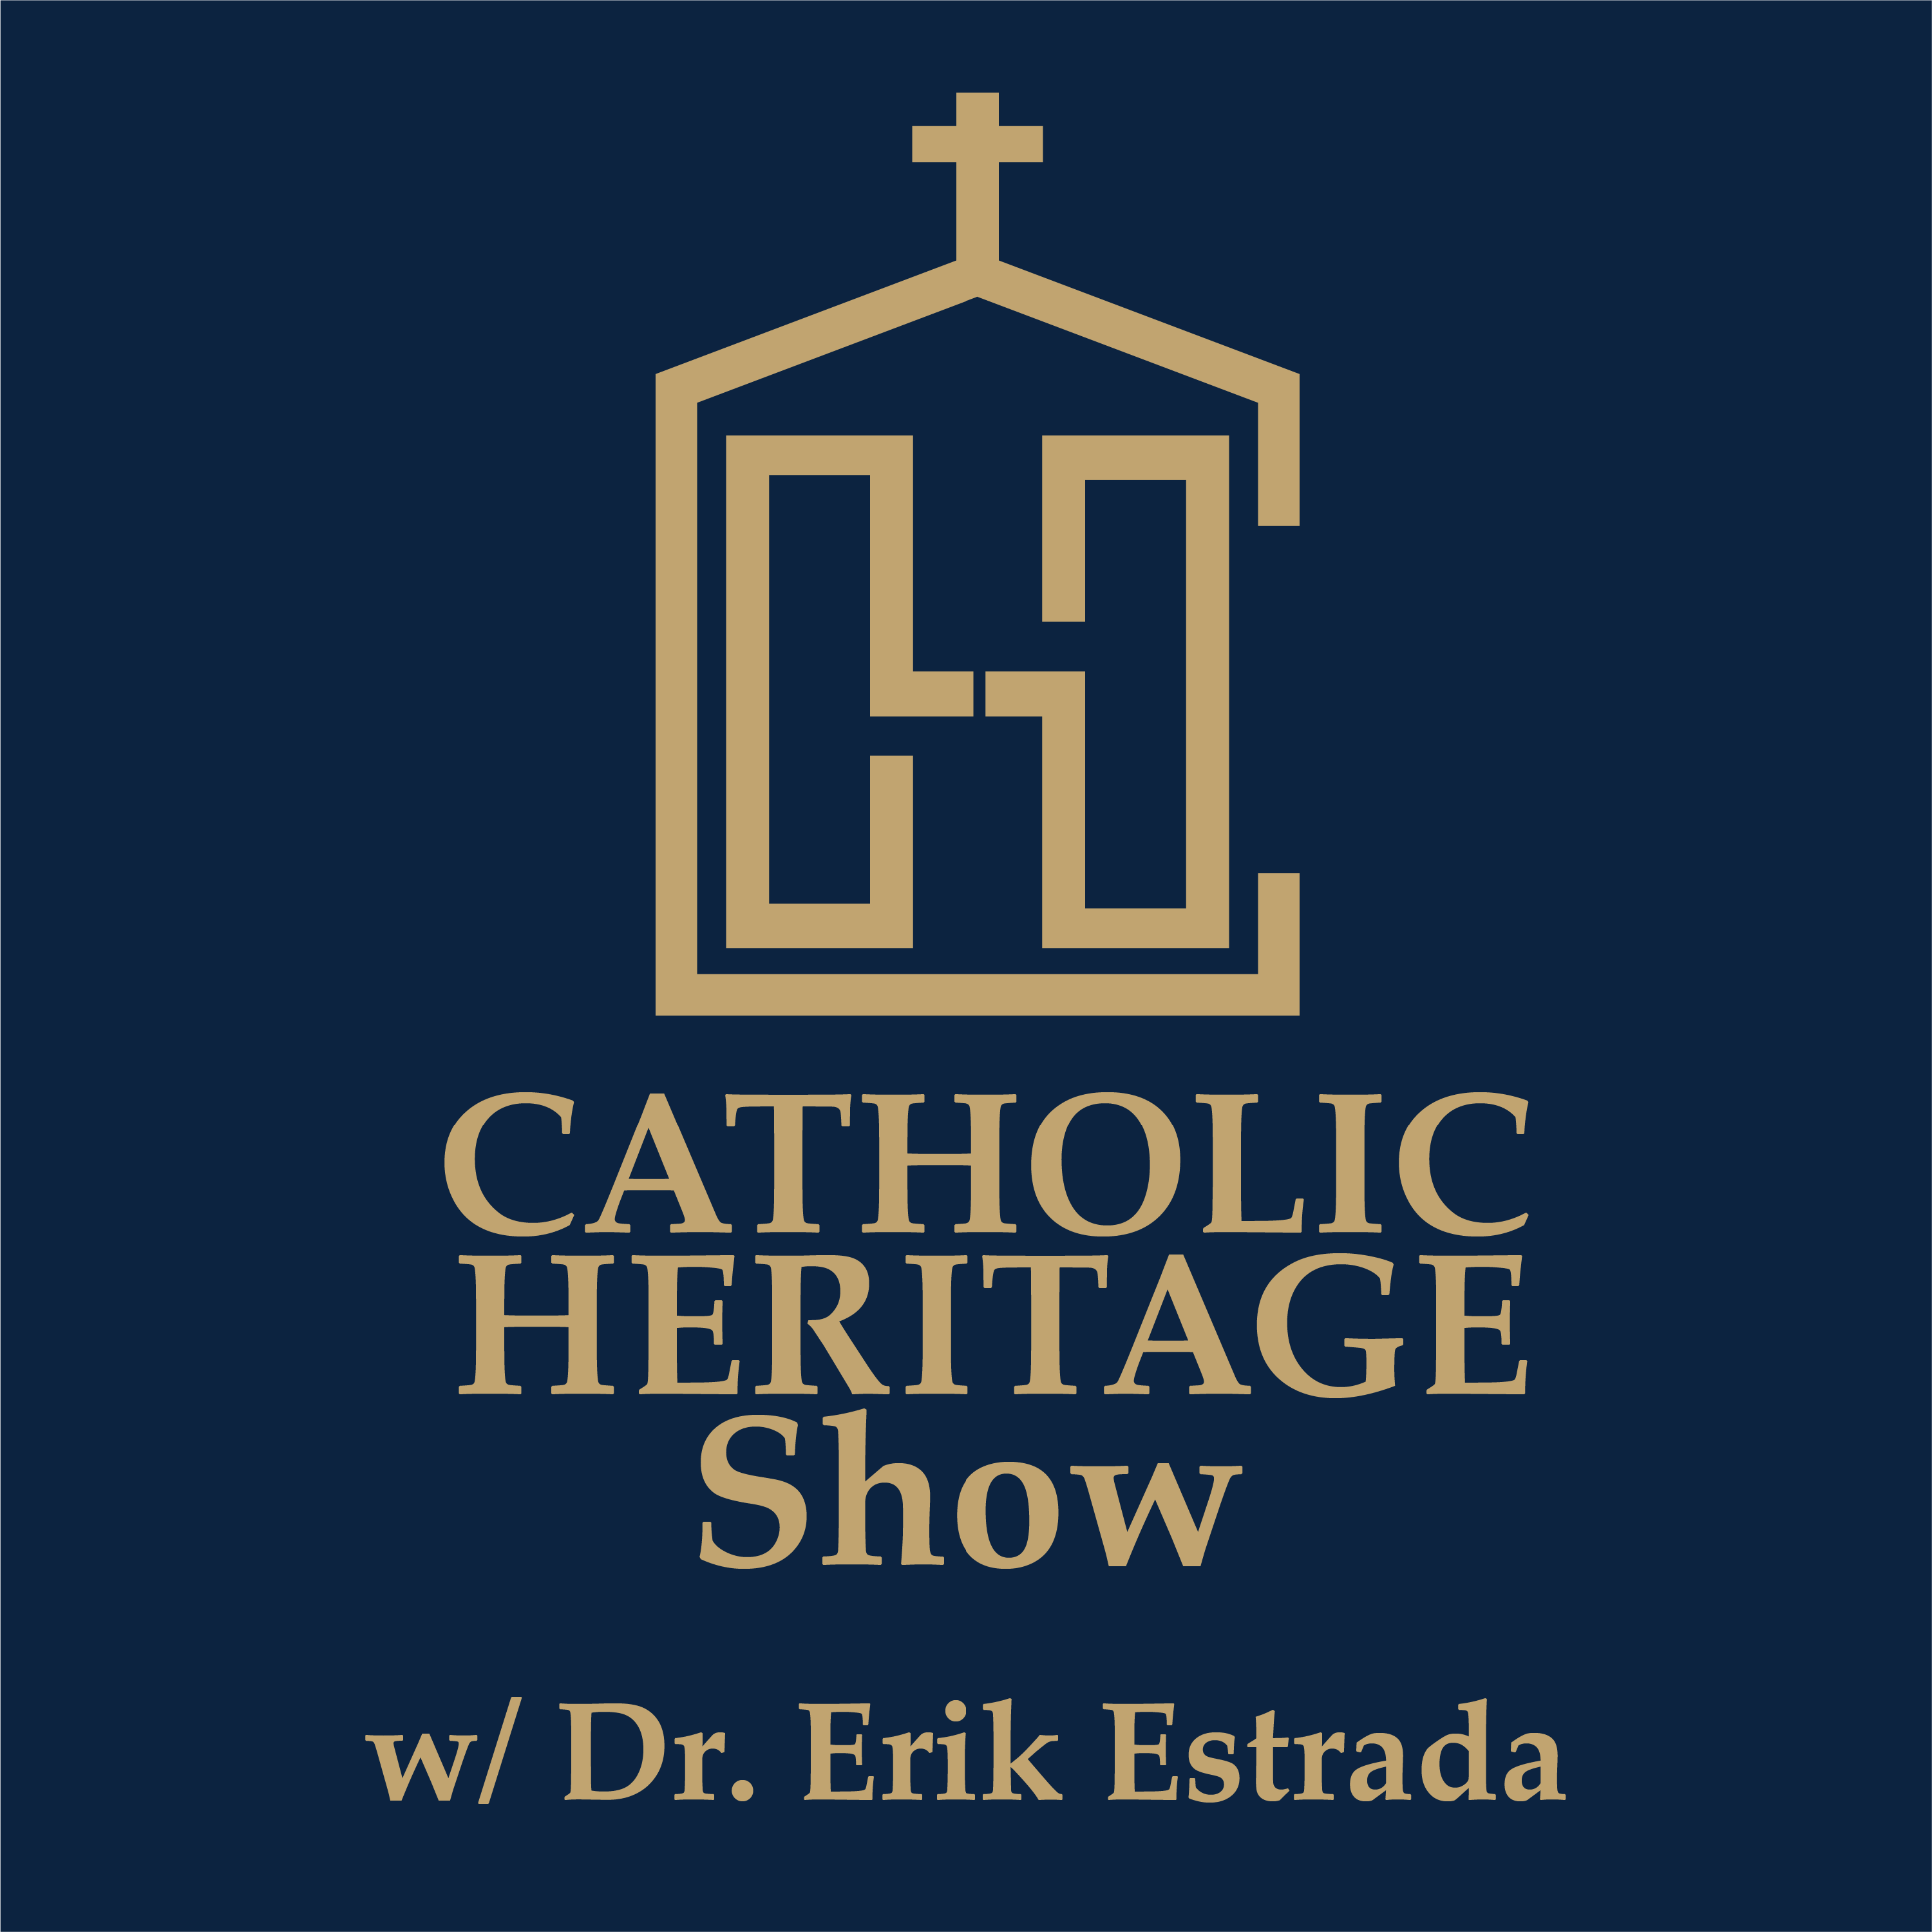 Introduction to the Catholic Heritage Show and Bio of Dr Erik Estrada